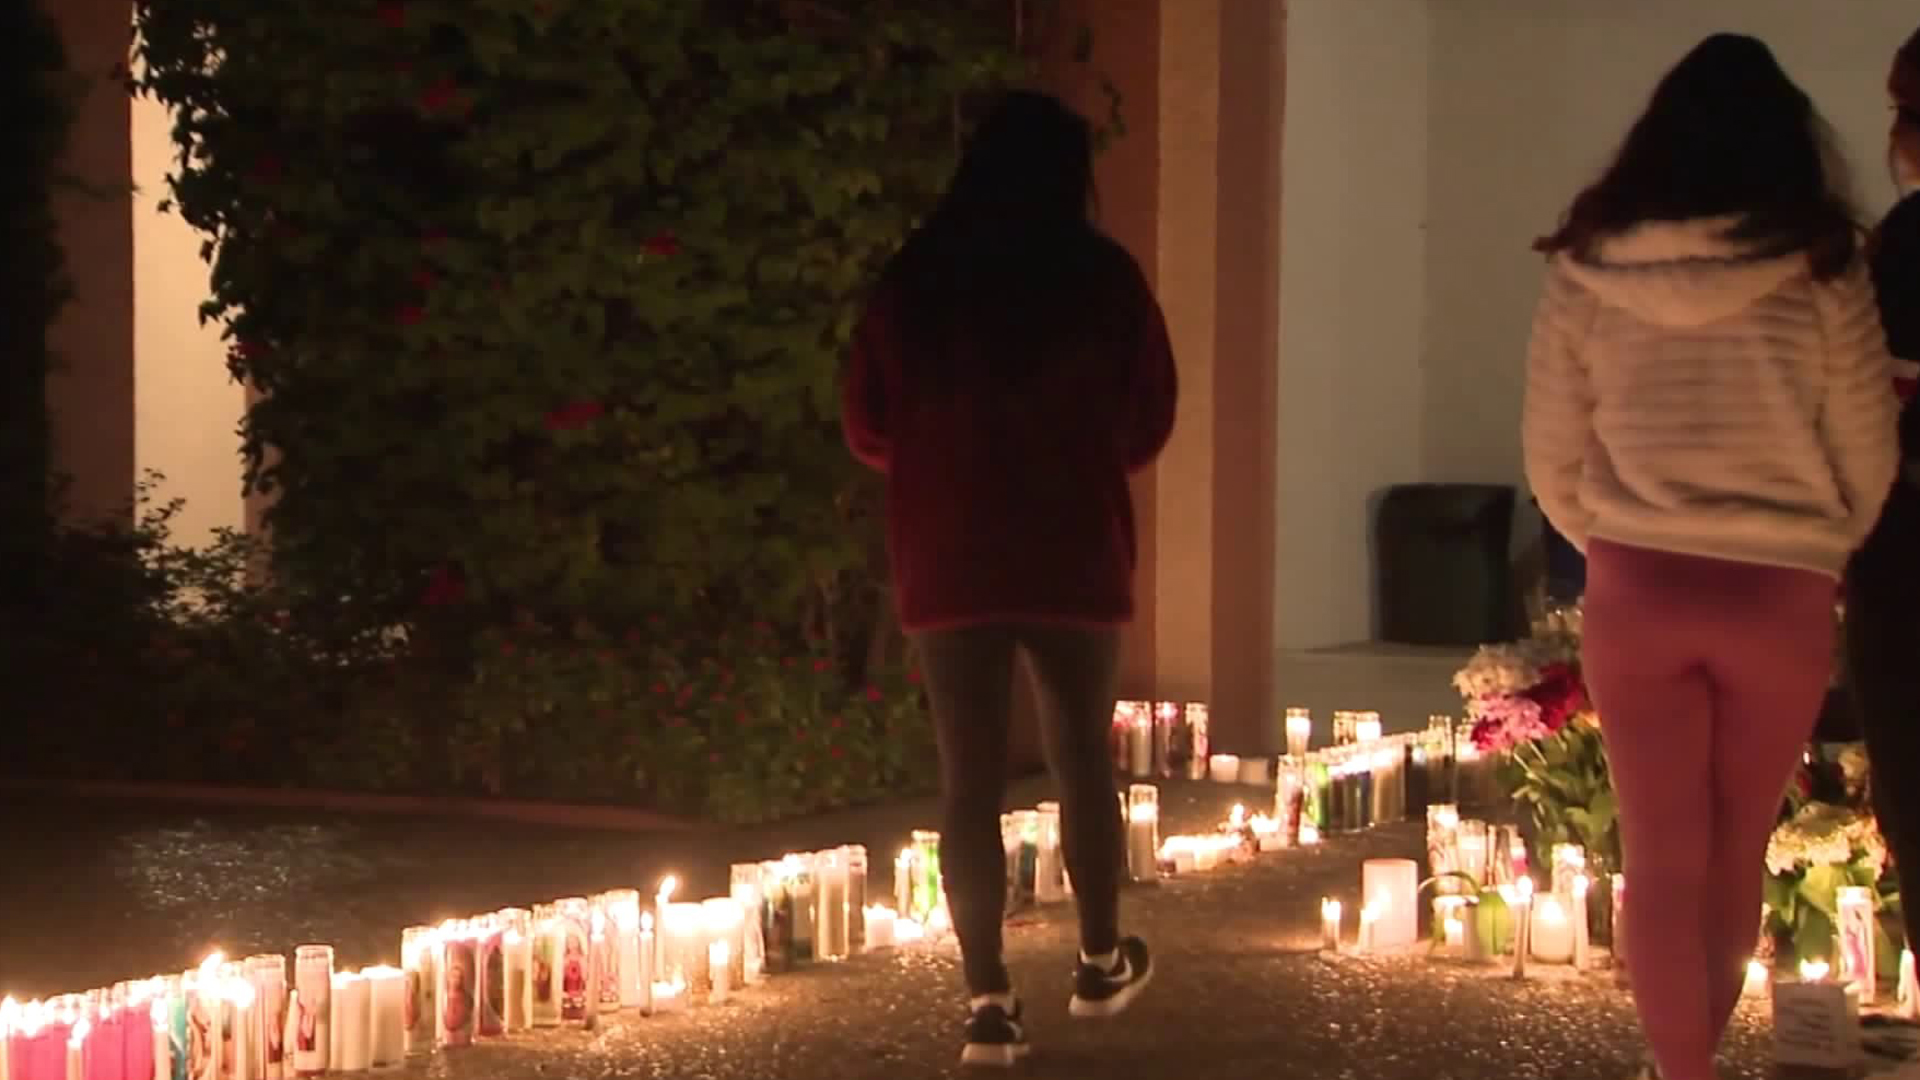 Students at Damien High School in La Verne attend a vigil on Dec. 15, 2019, for Tim Staples, a teacher there who died a day earlier while taking part in the search for a missing hiker on Mount Baldy. (Credit: KTLA)